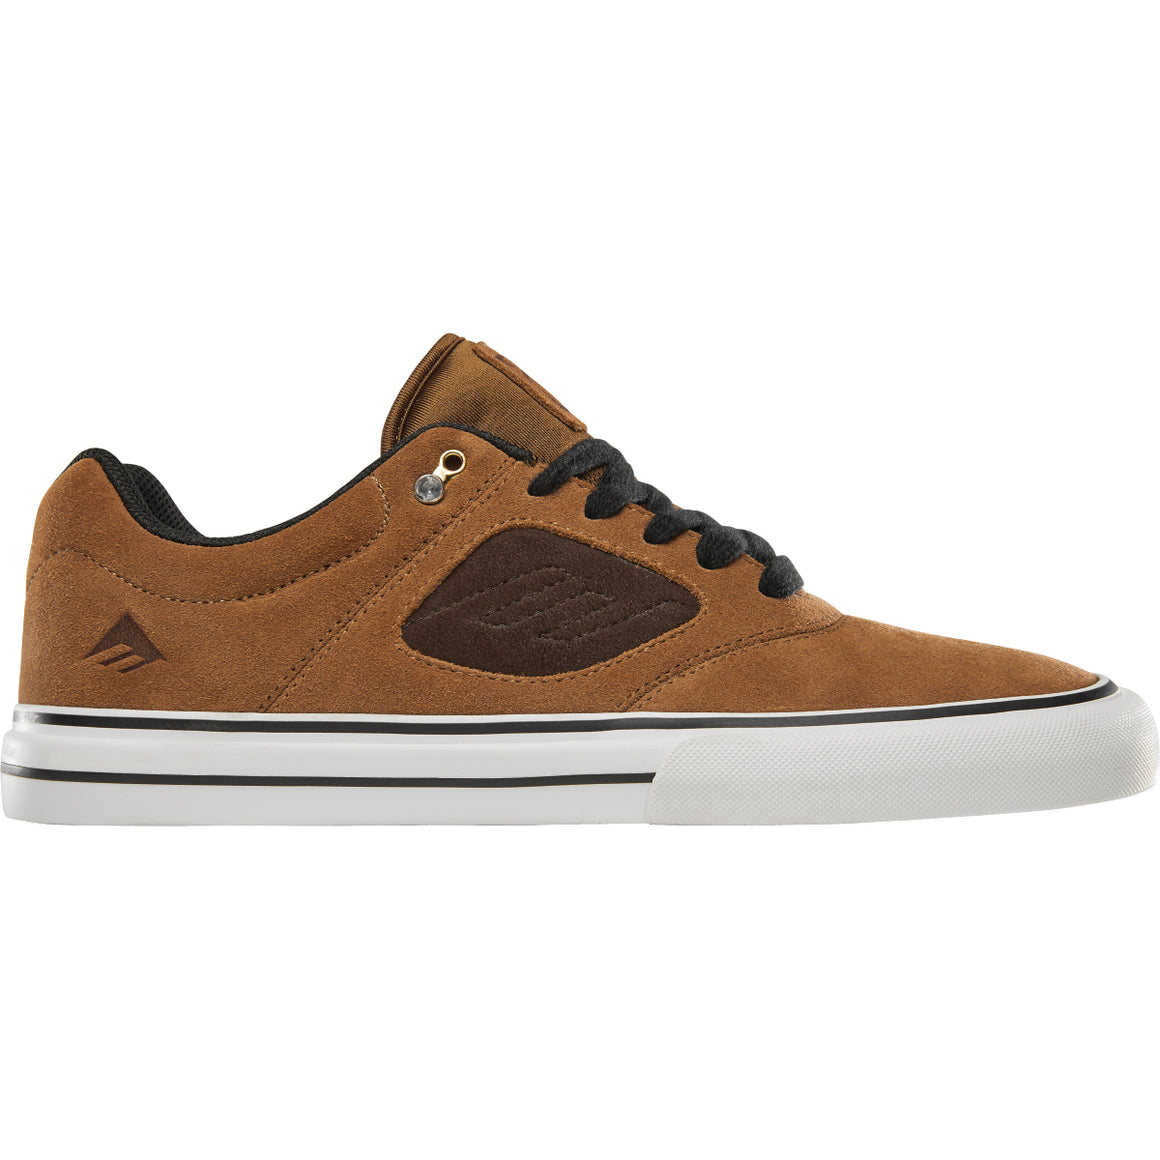 Emerica Reynolds 3 G6 Vulc (Tan/Brown)